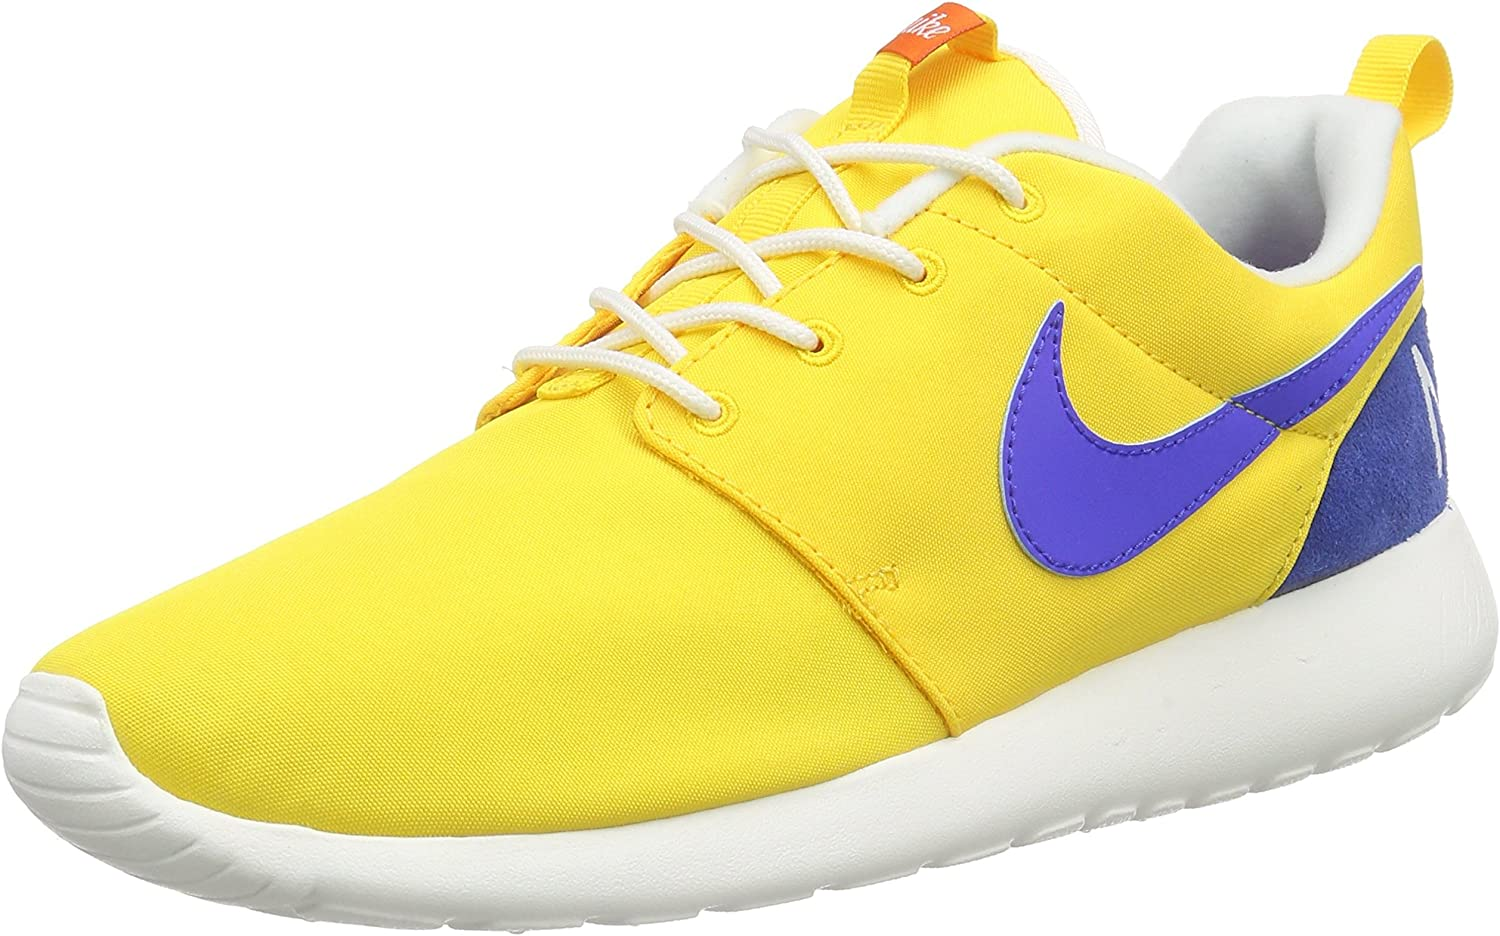 Nike Roshe One Retro, Chaussure de Course Homme